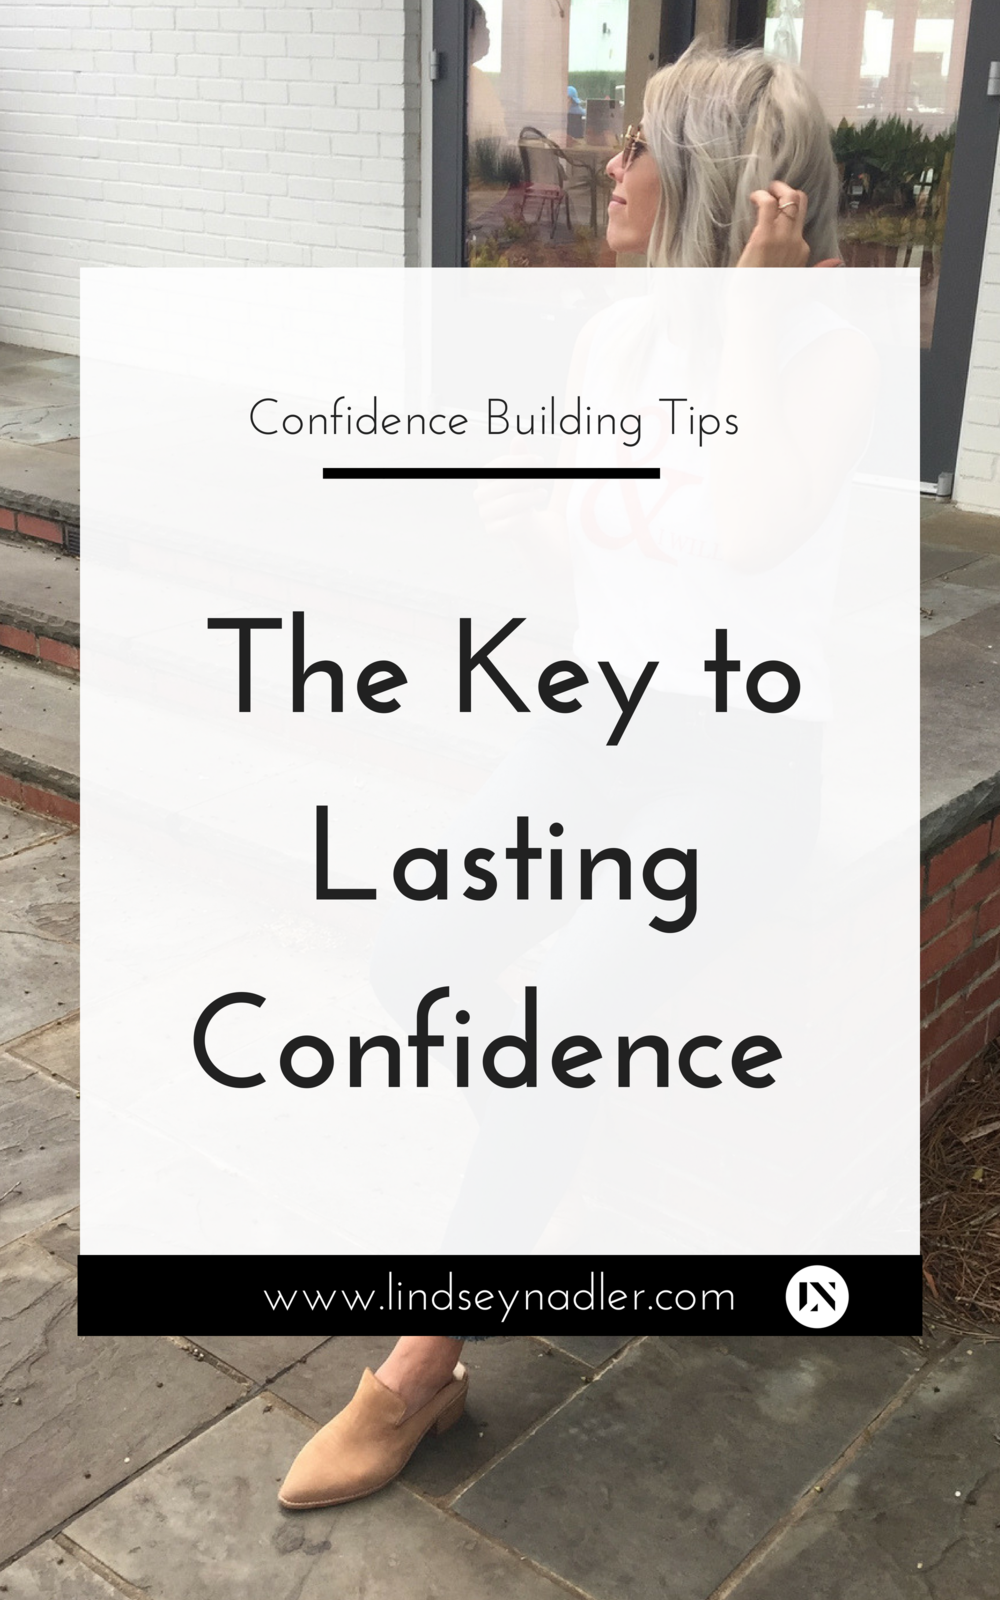 The Key to Lasting Confidence